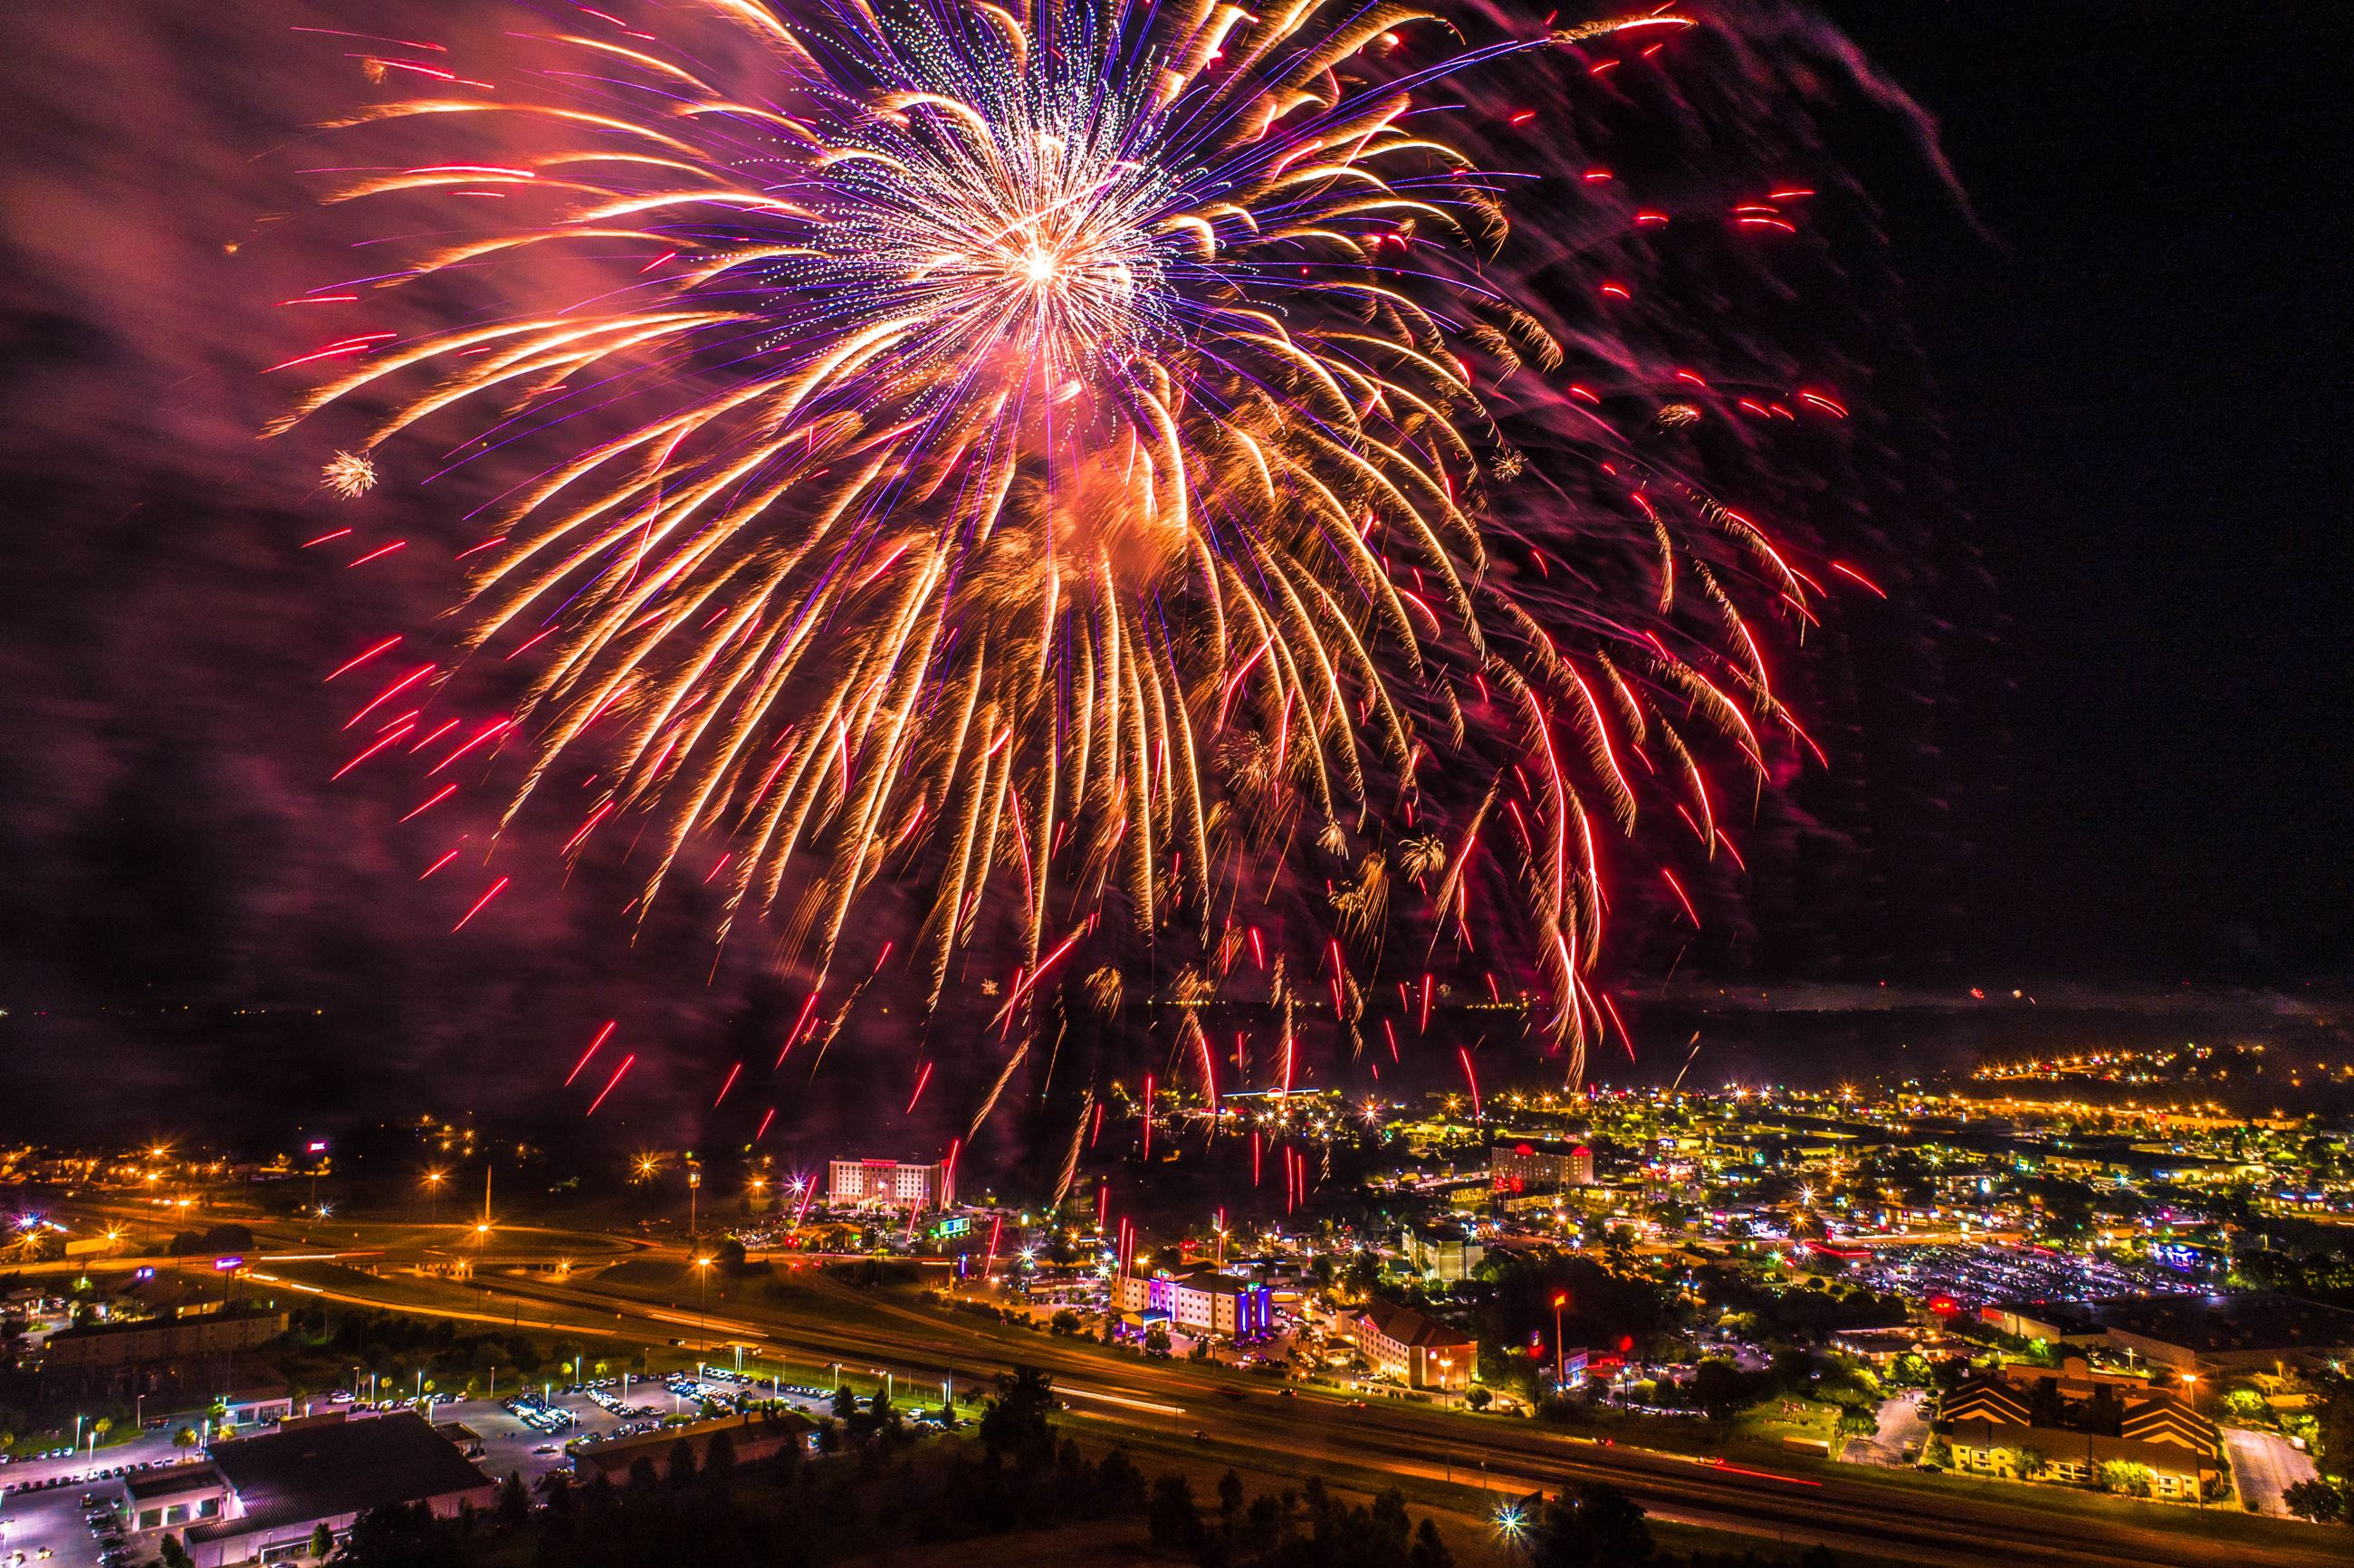 Aerial image of fireworks display.